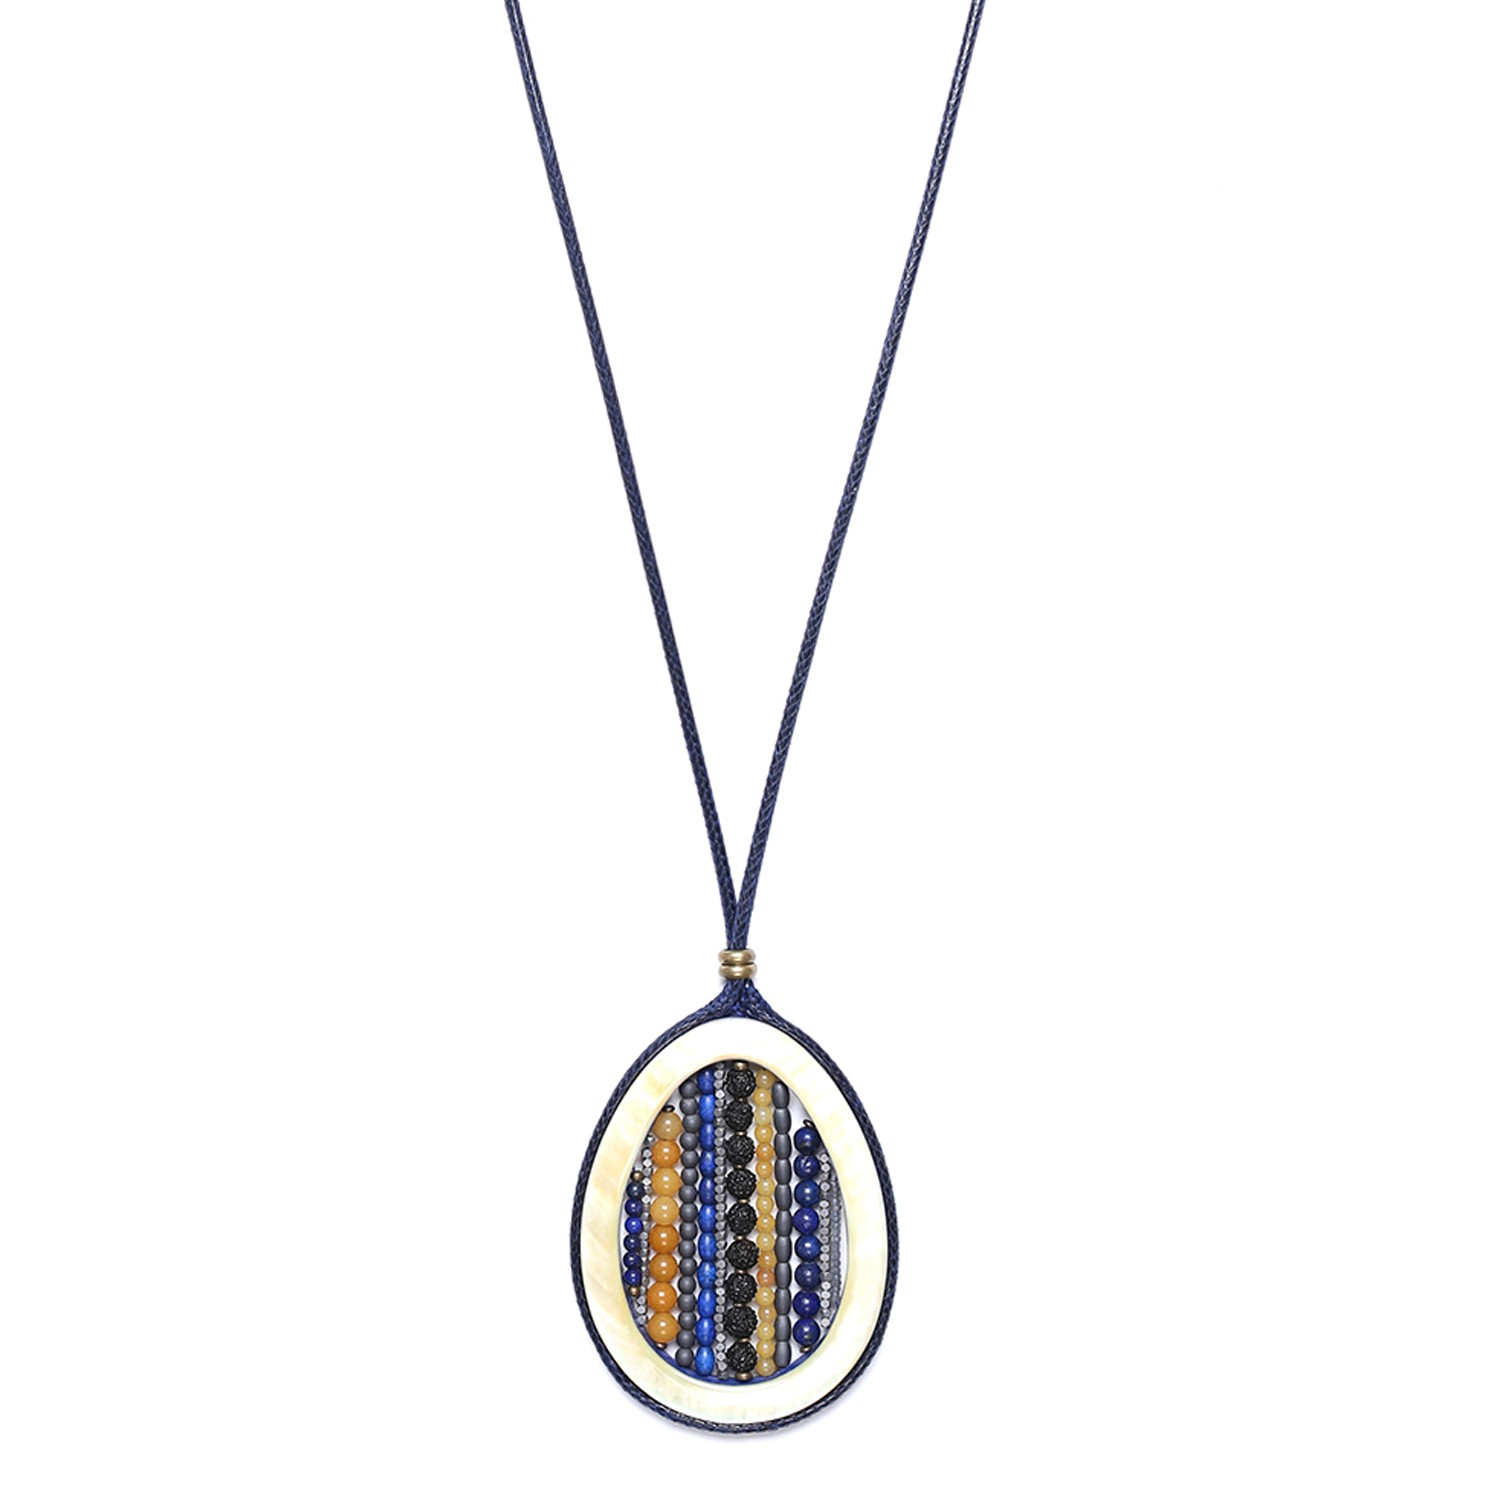 BLUE TRIBE long necklace